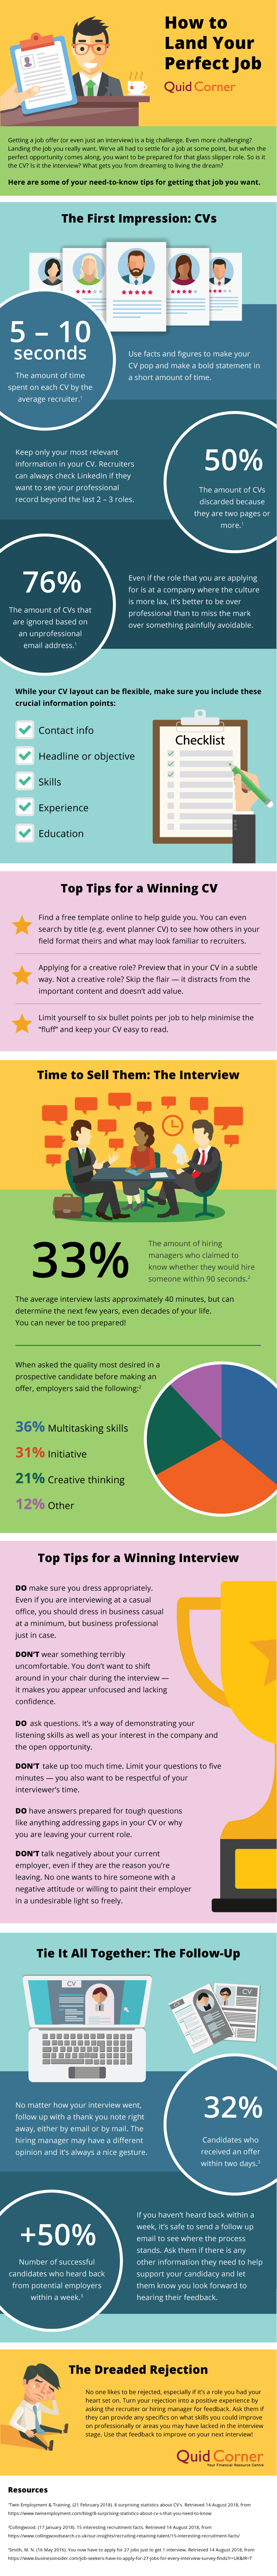 The Perfect Job Starts with a Perfect First Impression - Infographic